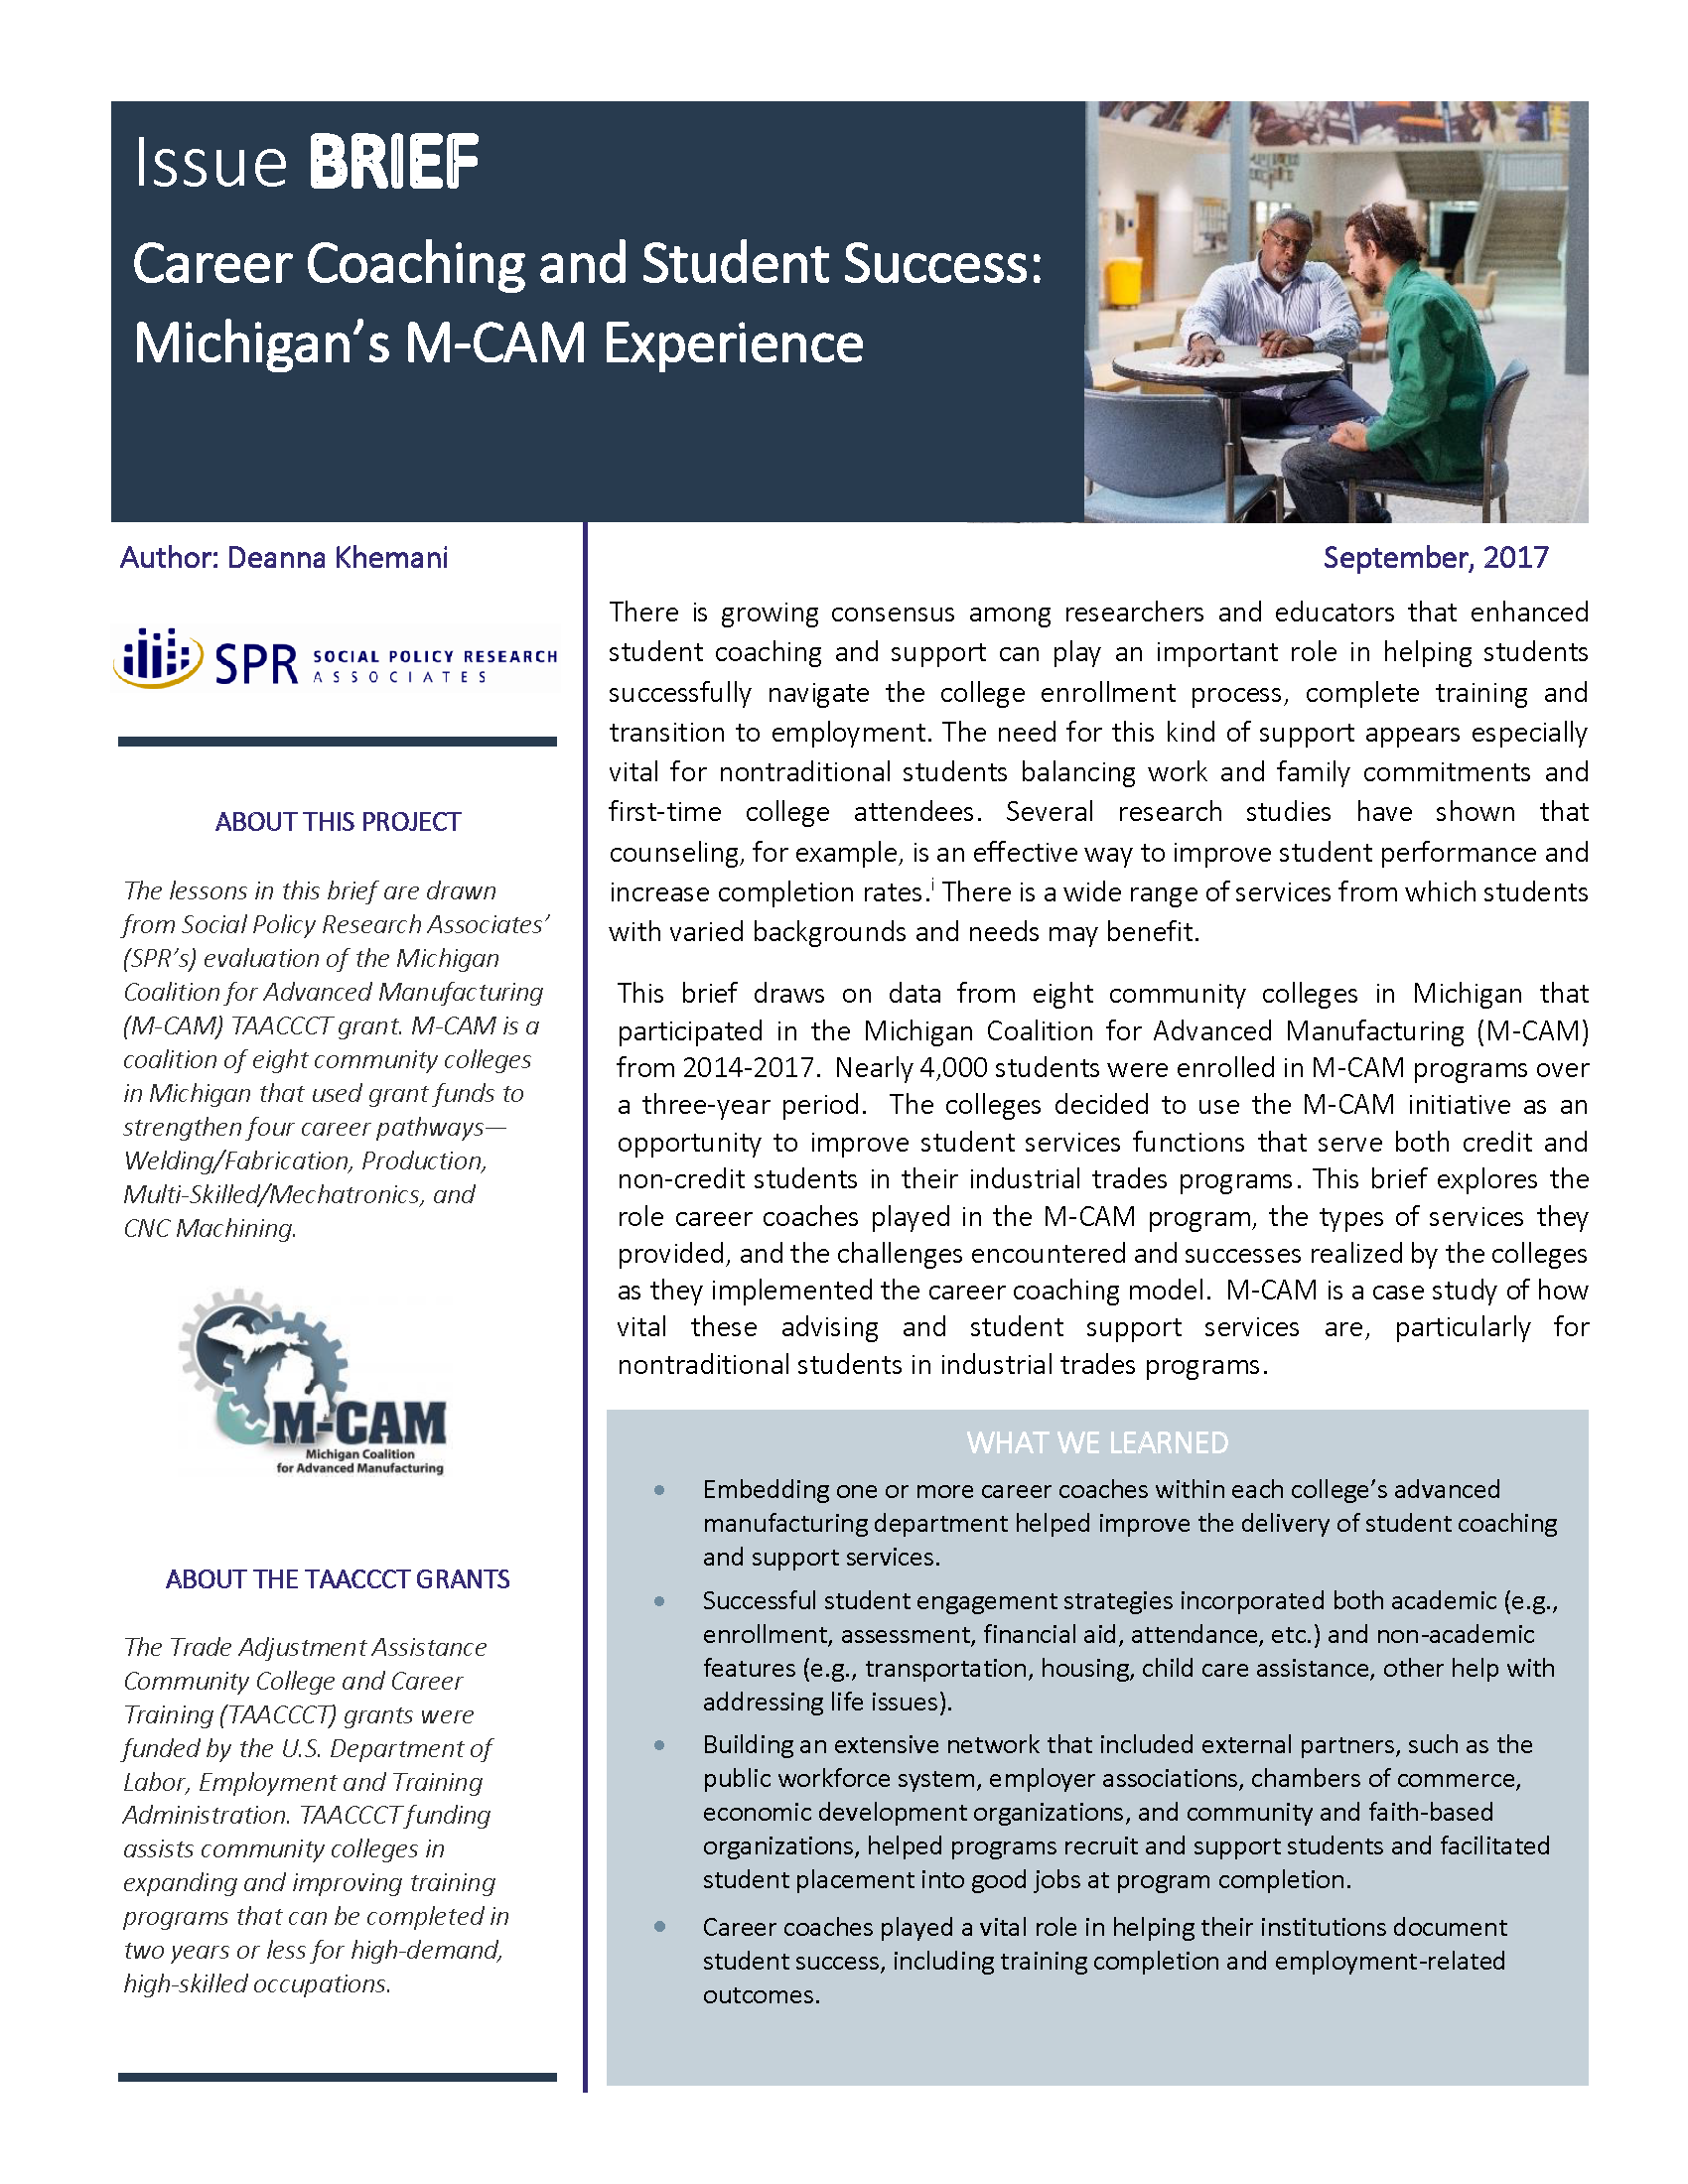 Cover of Career Coaching and Student Success: Michigan's M-CAM Experience Brief